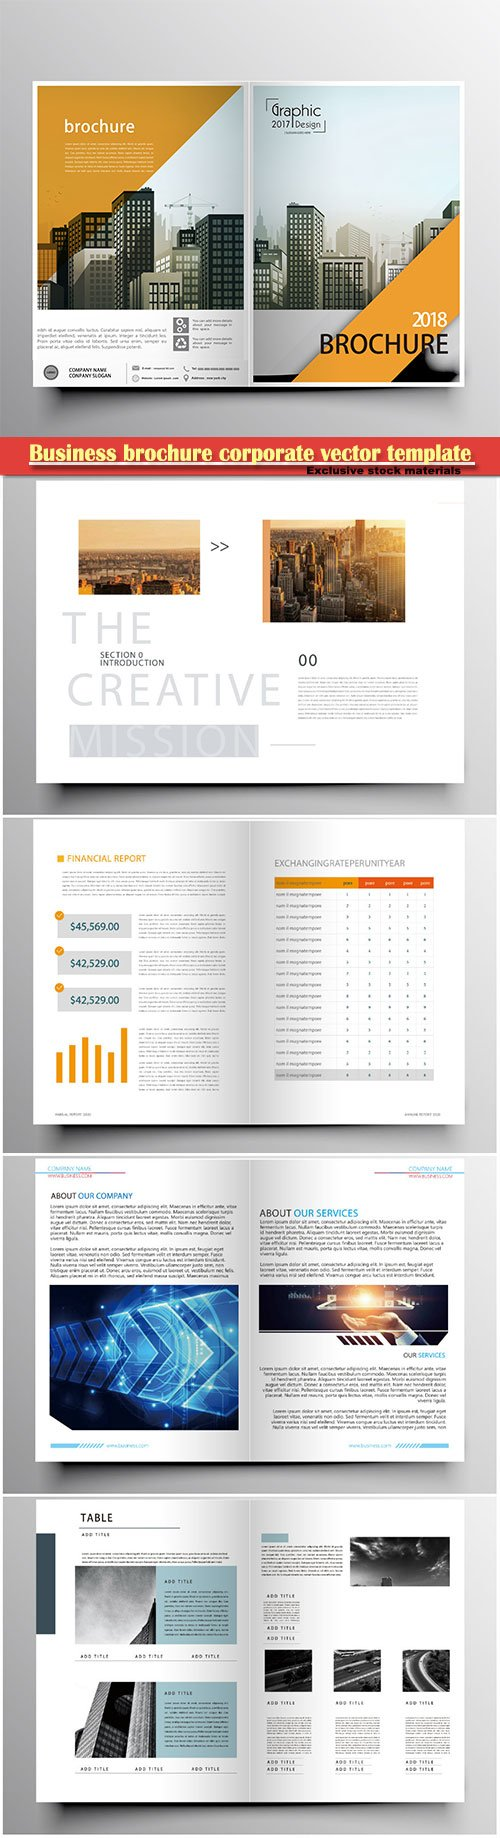 Business brochure corporate vector template, magazine flyer mockup # 53